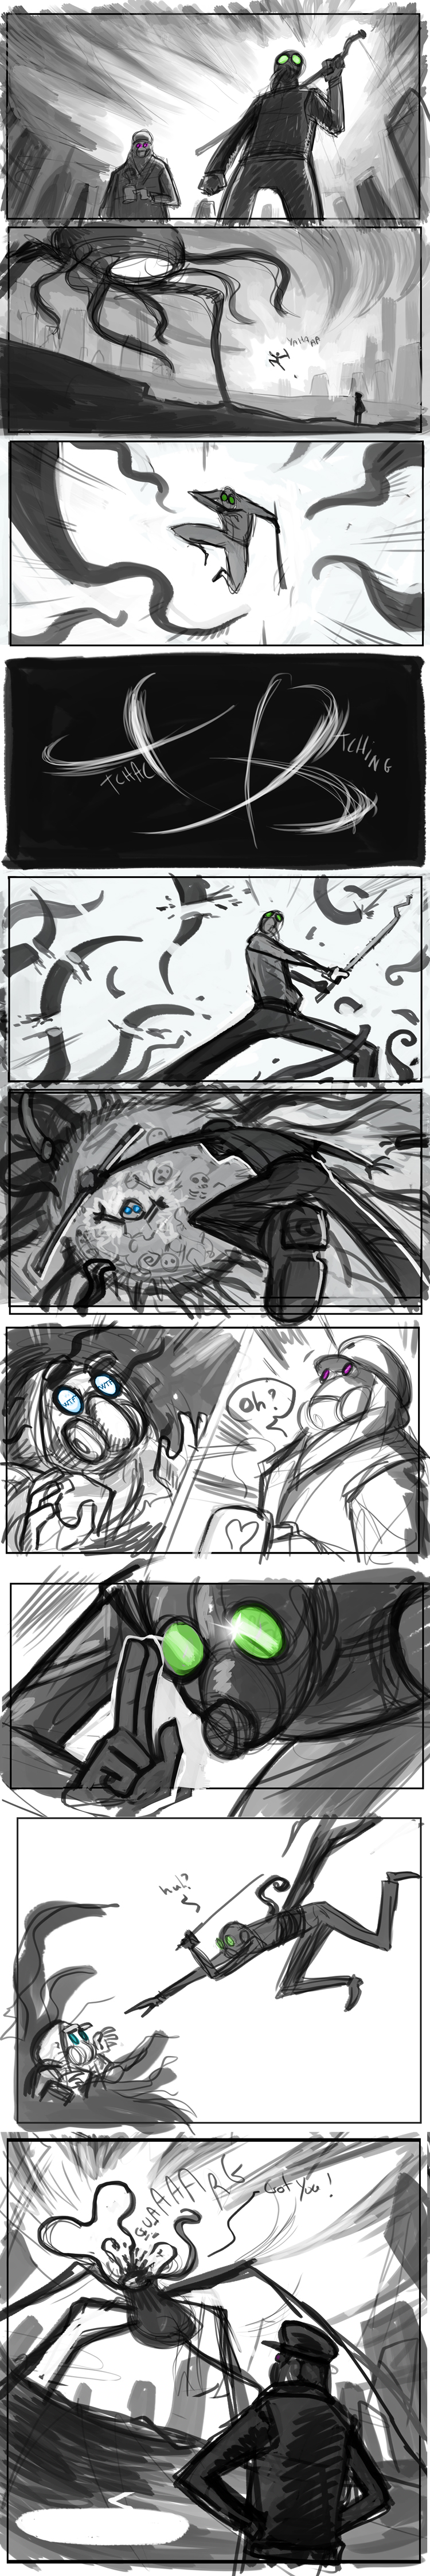 Romantically Apocalyptic 60 - Storyboard by Grimhel